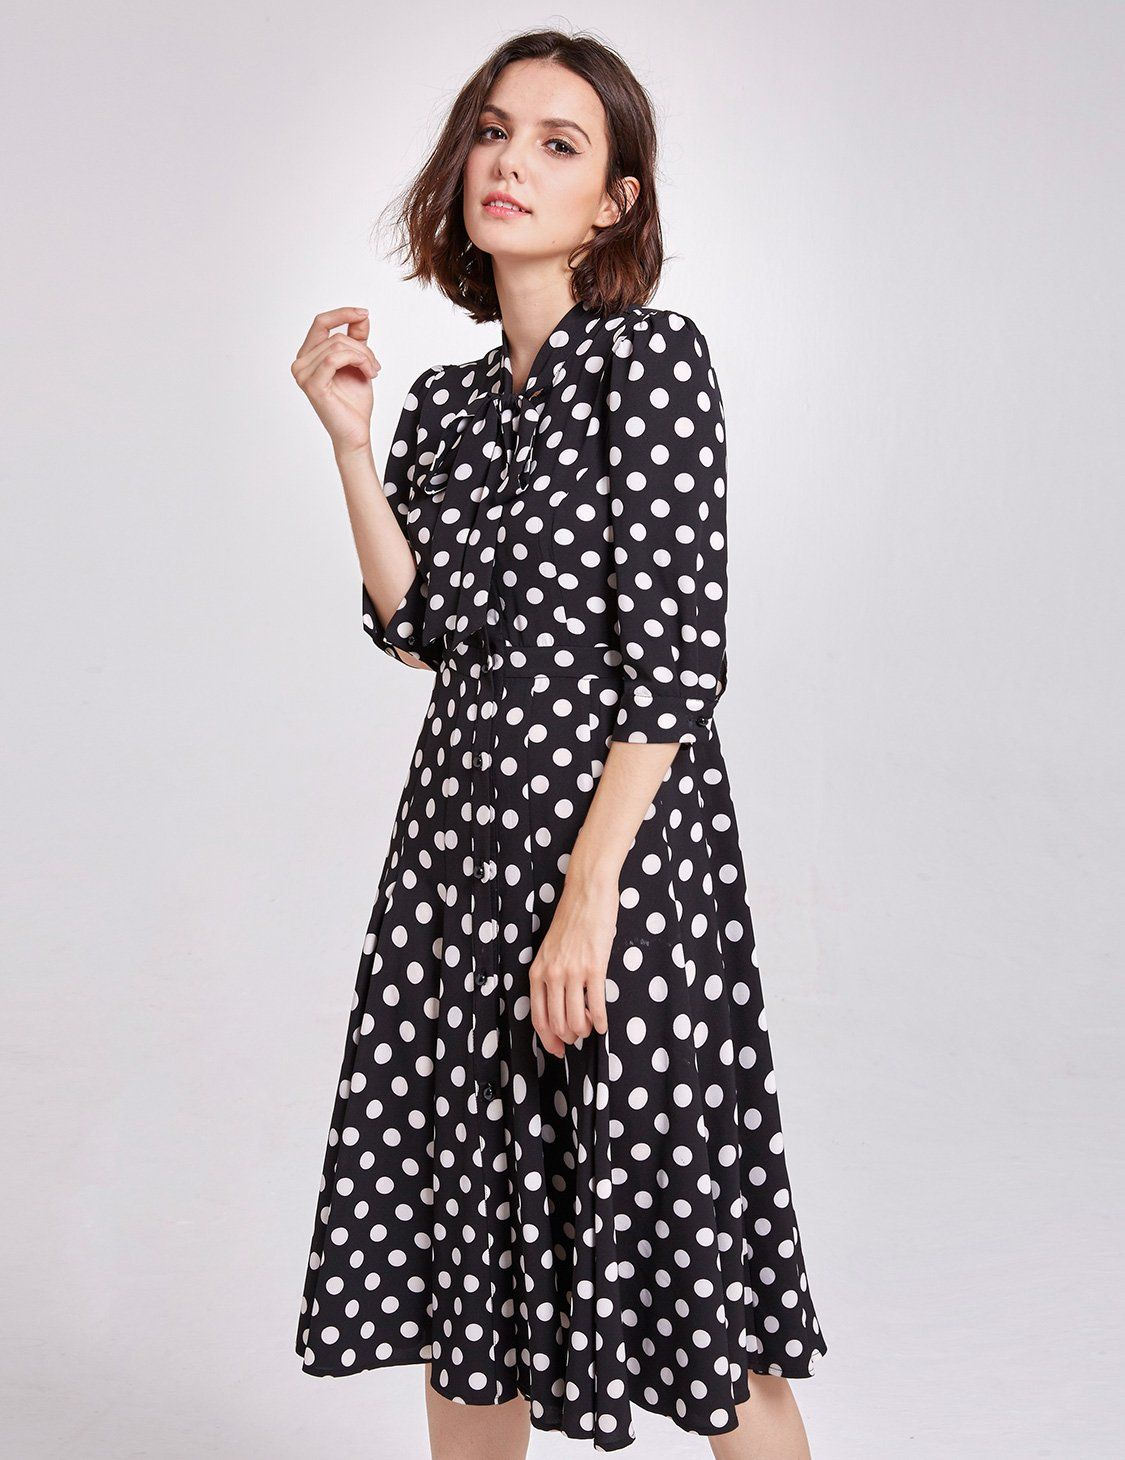 5c18814ddf3 Maternity Fashion - Alisa Pan Womens Maternity Wrap VNeck Polka Dot Dress  Summer Spot Dress Size 14 White and Black -- Check out this great item.